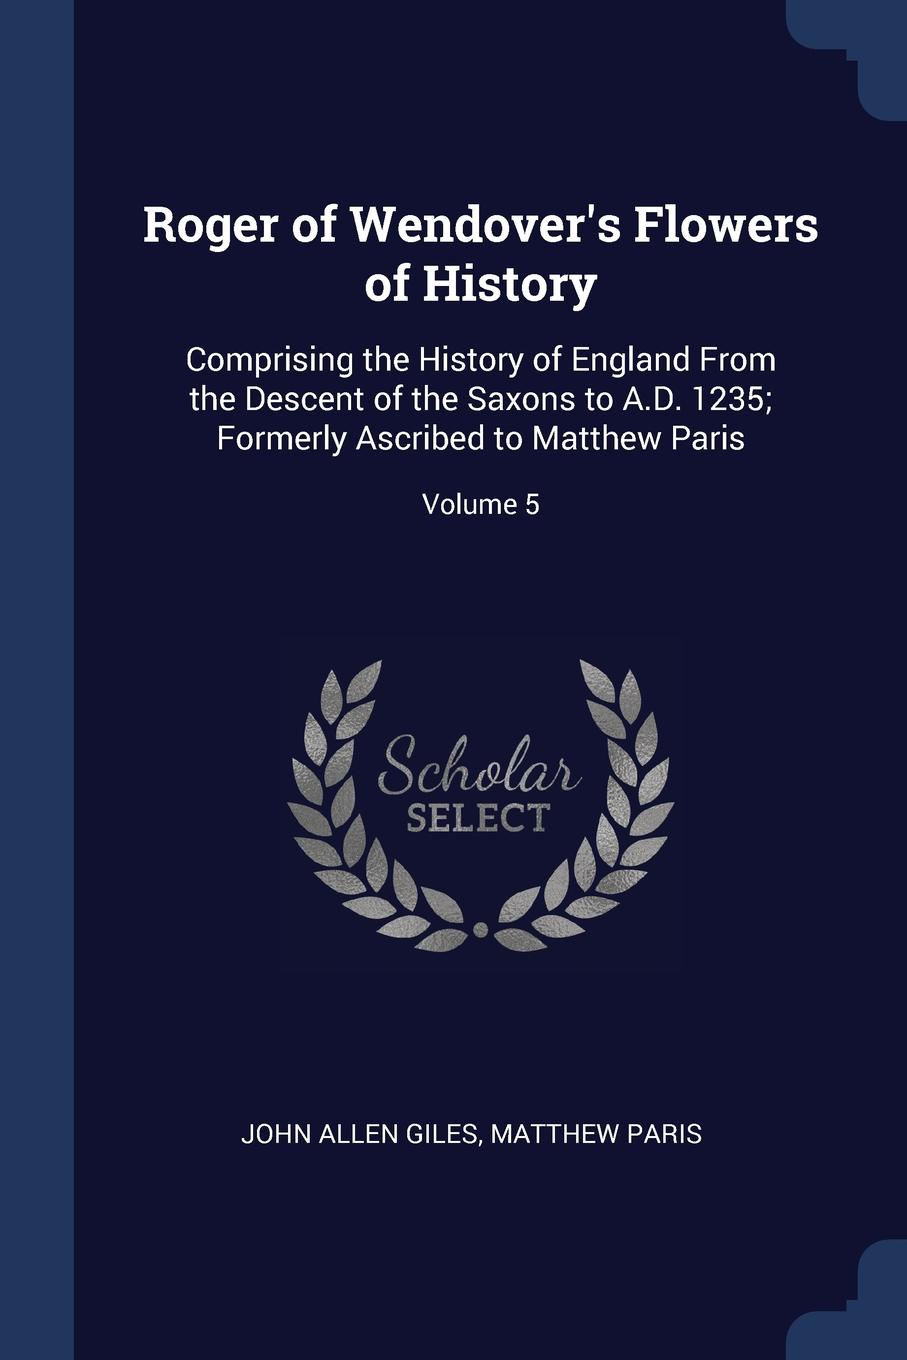 Roger of Wendover.s Flowers of History. Comprising the History of England From the Descent of the Saxons to A.D. 1235; Formerly Ascribed to Matthew Paris; Volume 5. John Allen Giles, Matthew Paris